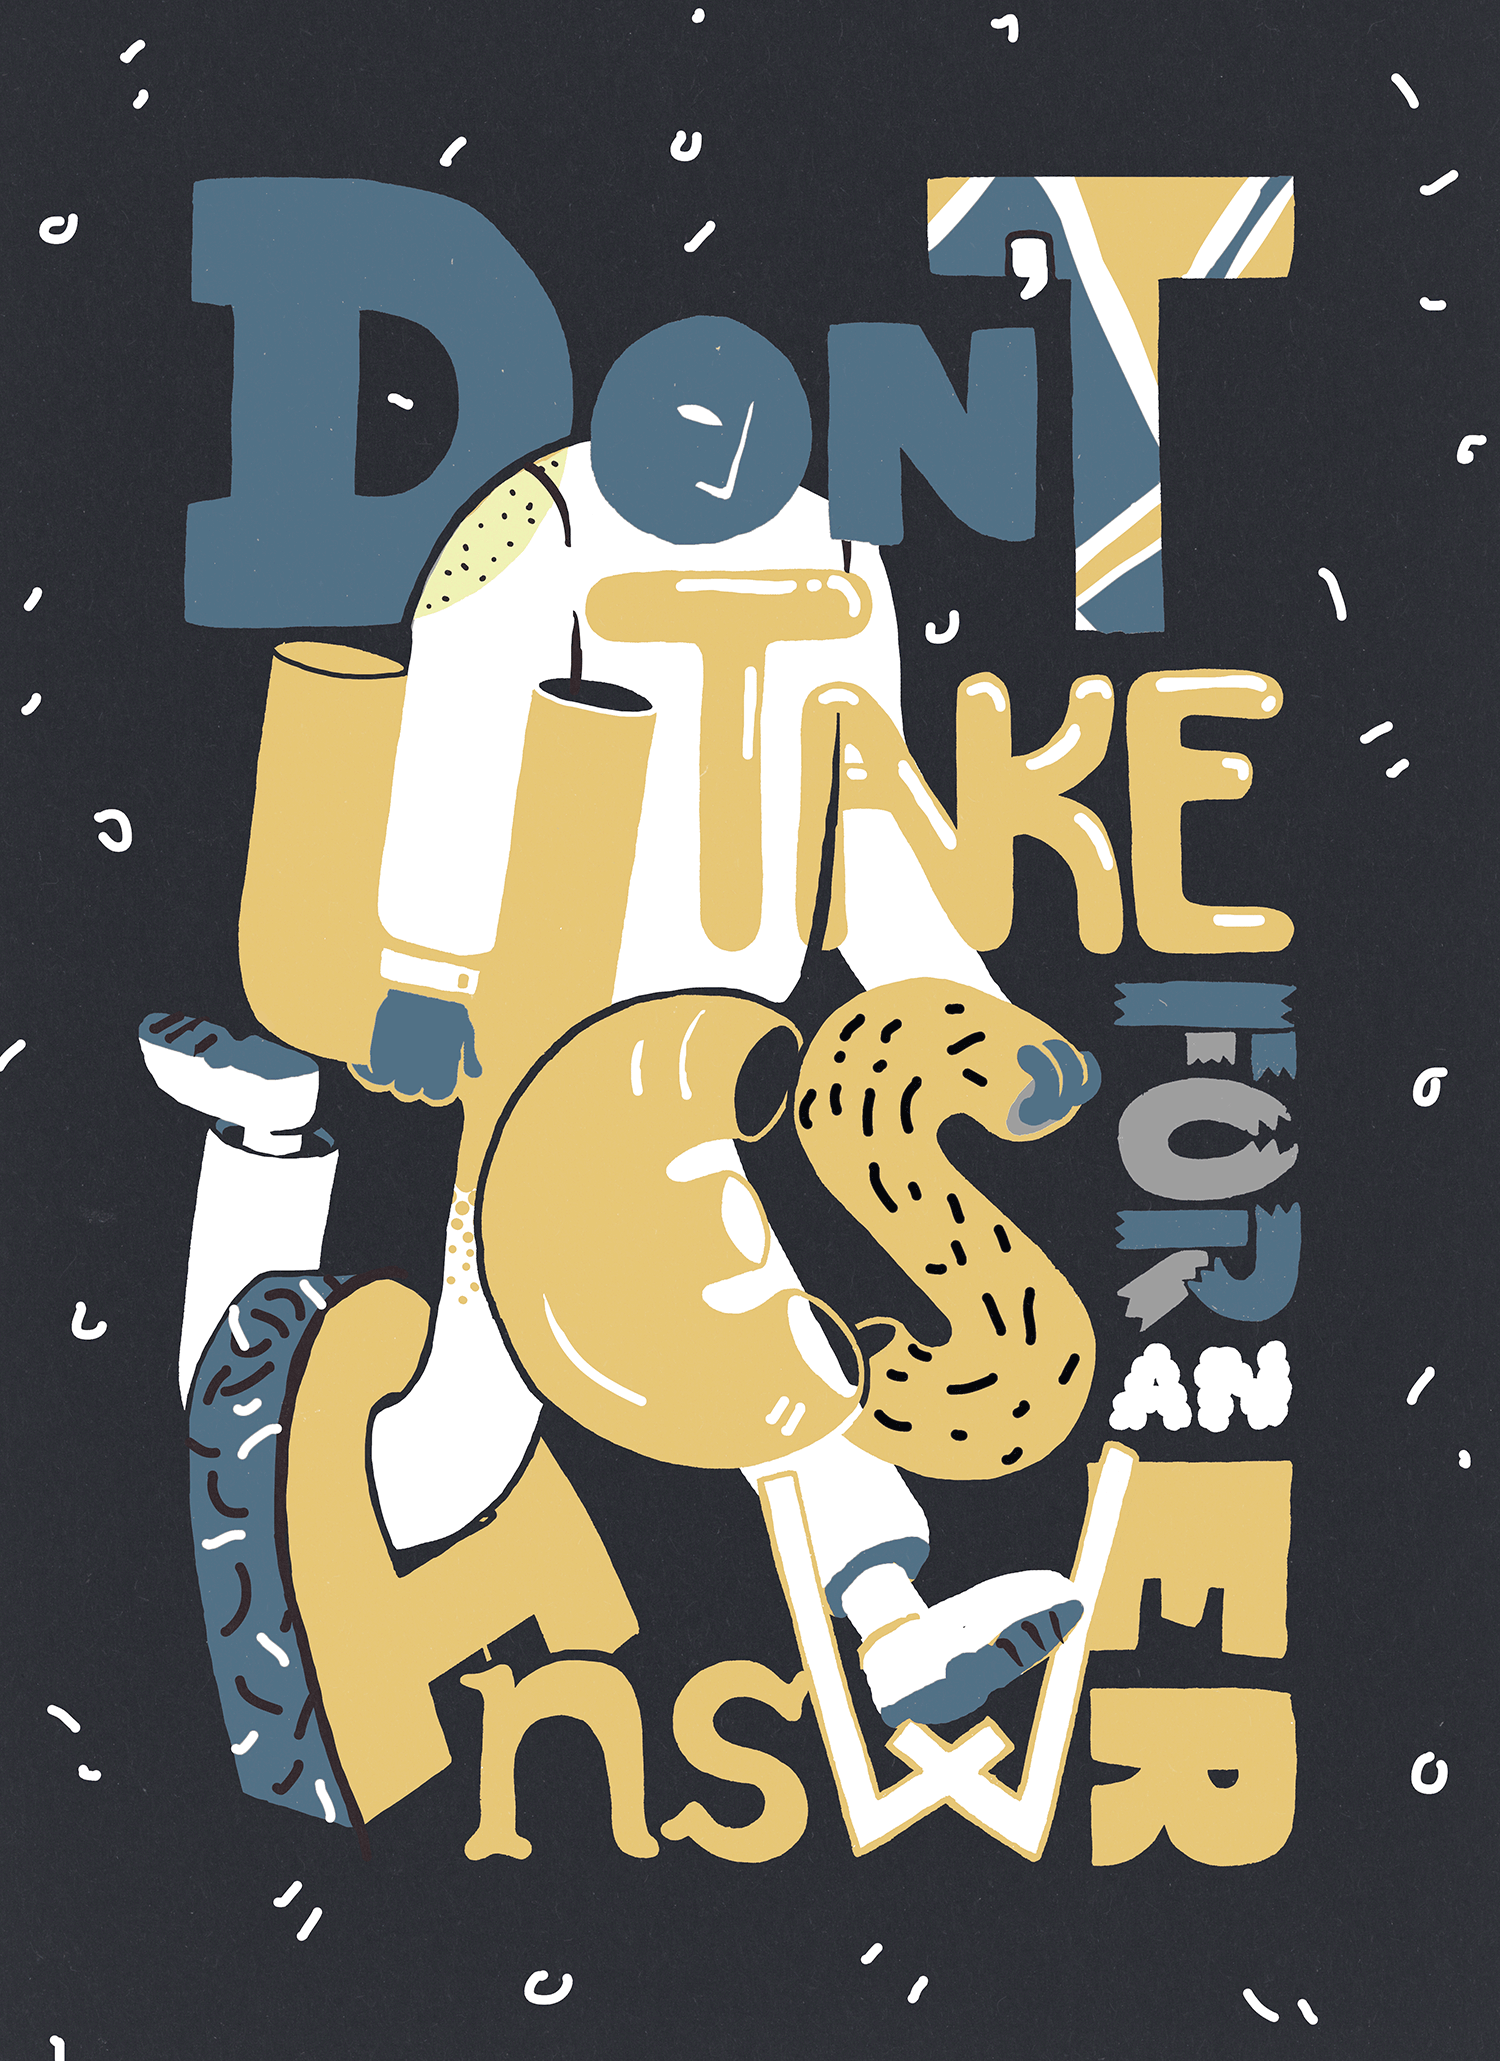 Don't_01.png